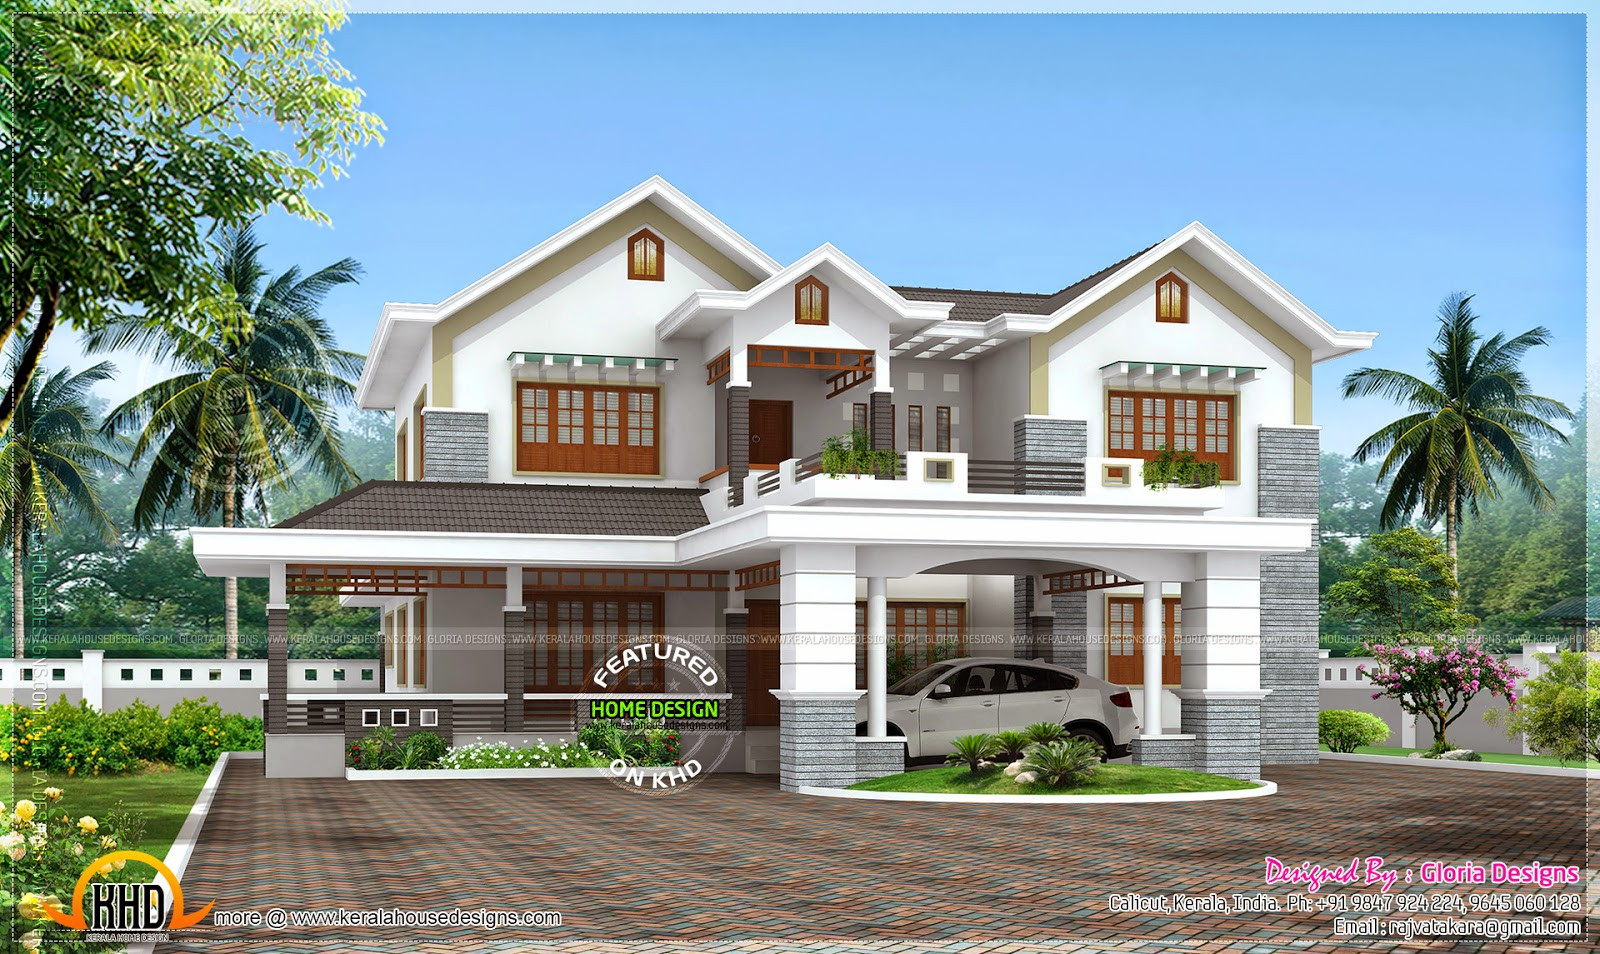 Beautiful 4 bedroom modern house kerala home design and House plans india with two bedrooms